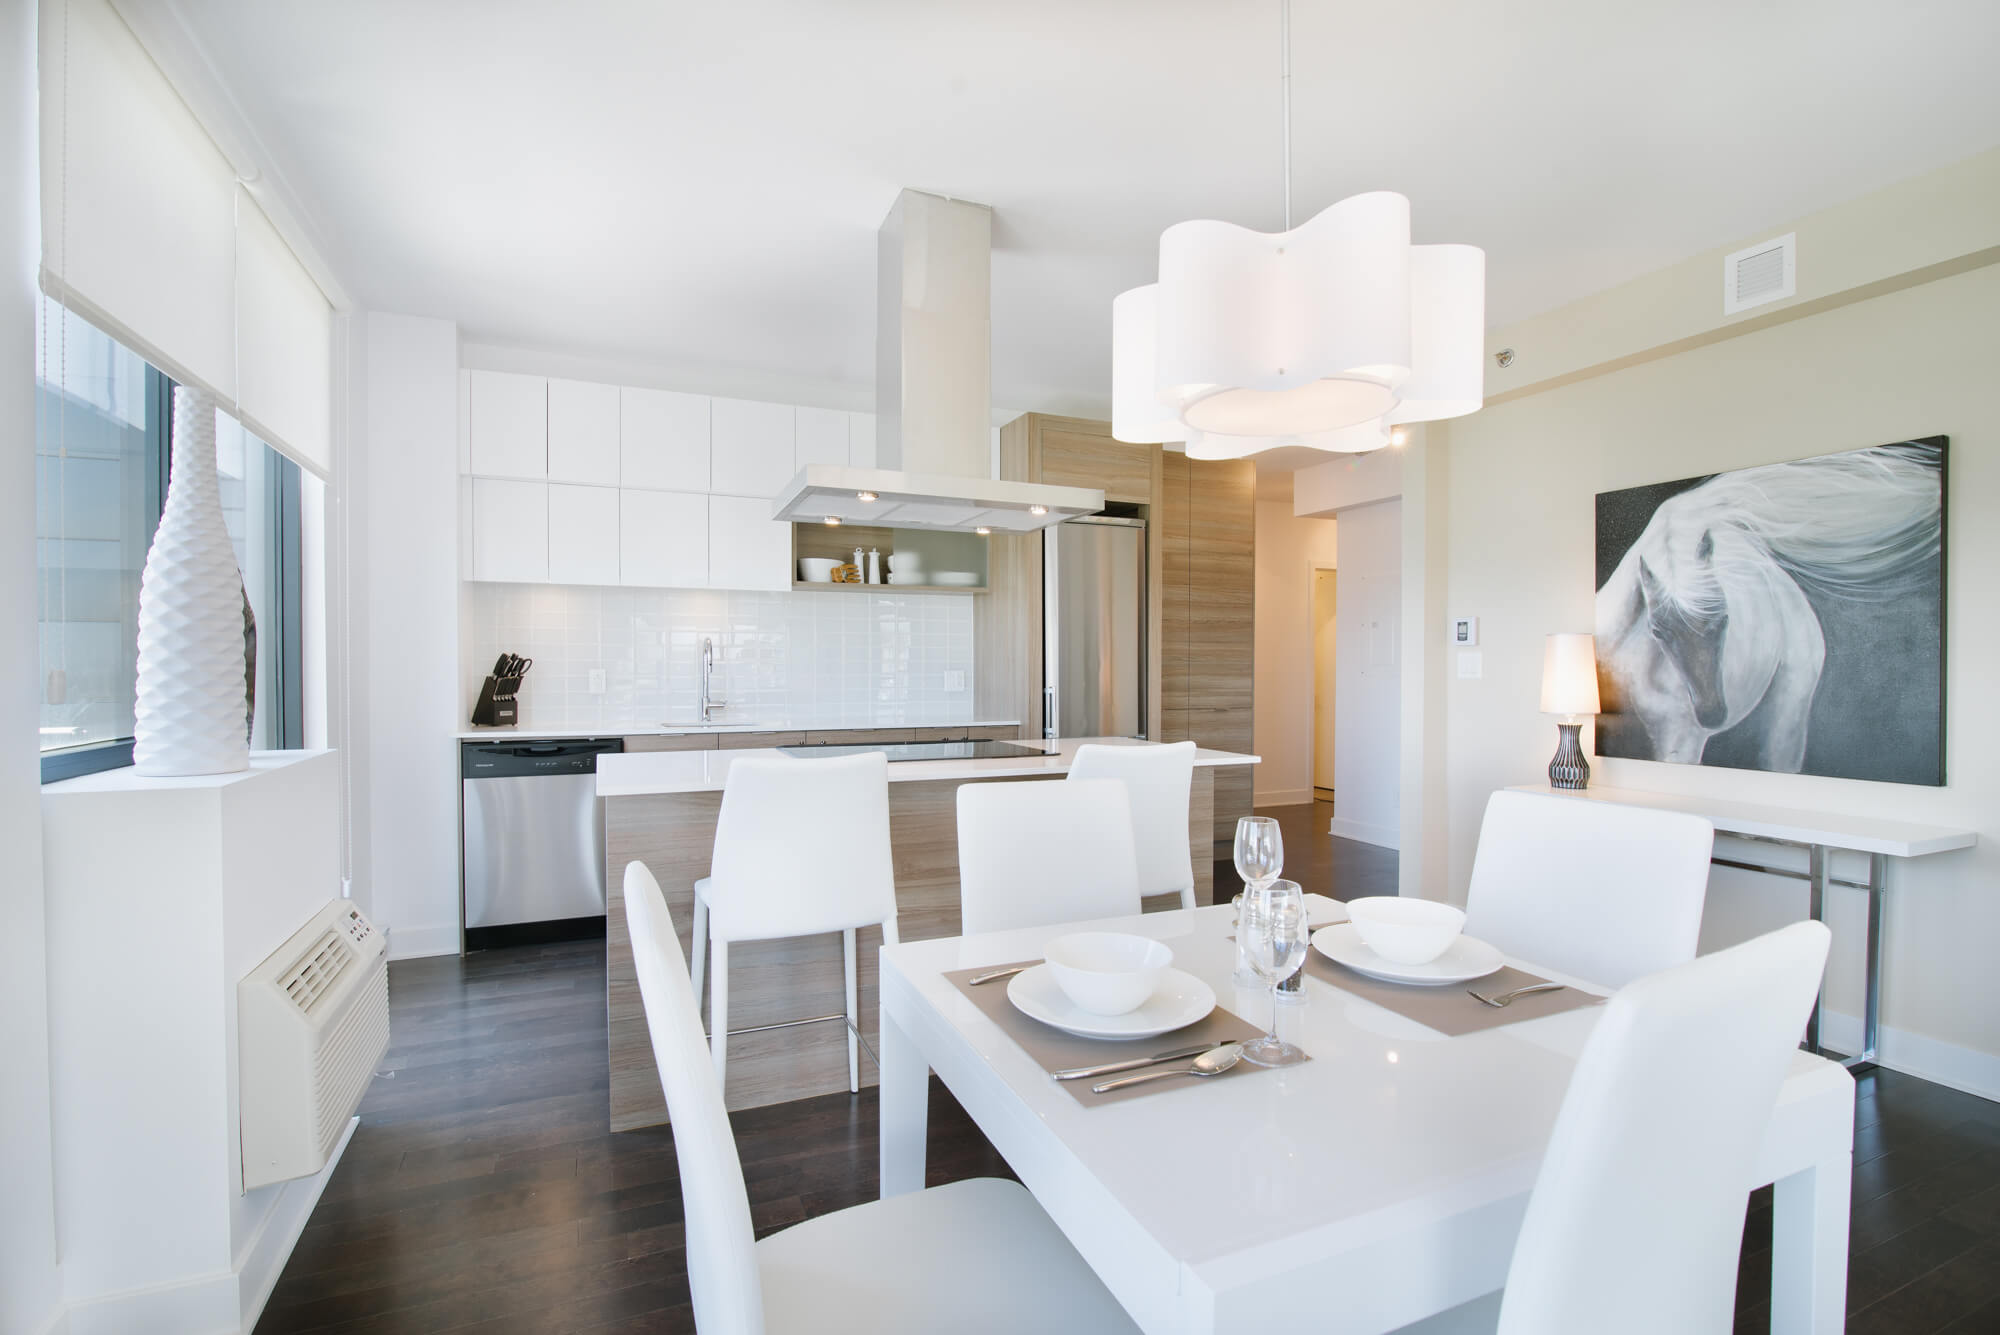 Home Staging Course For Home Sellers